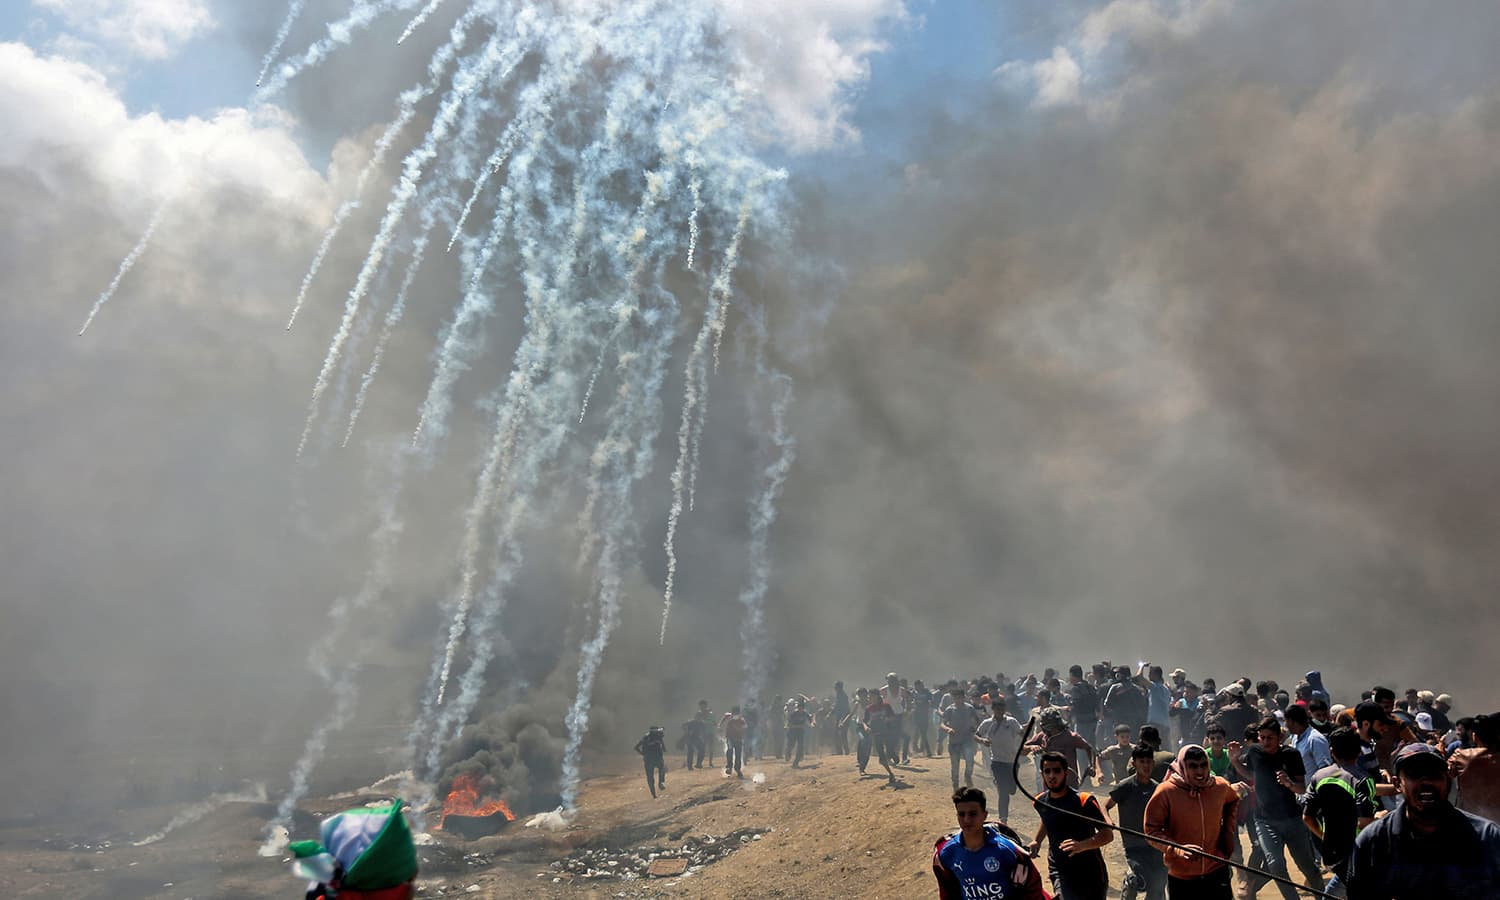 Palestinians run for cover from teargas fired by Israeli forces near the border between the Gaza strip and Israel. — AFP